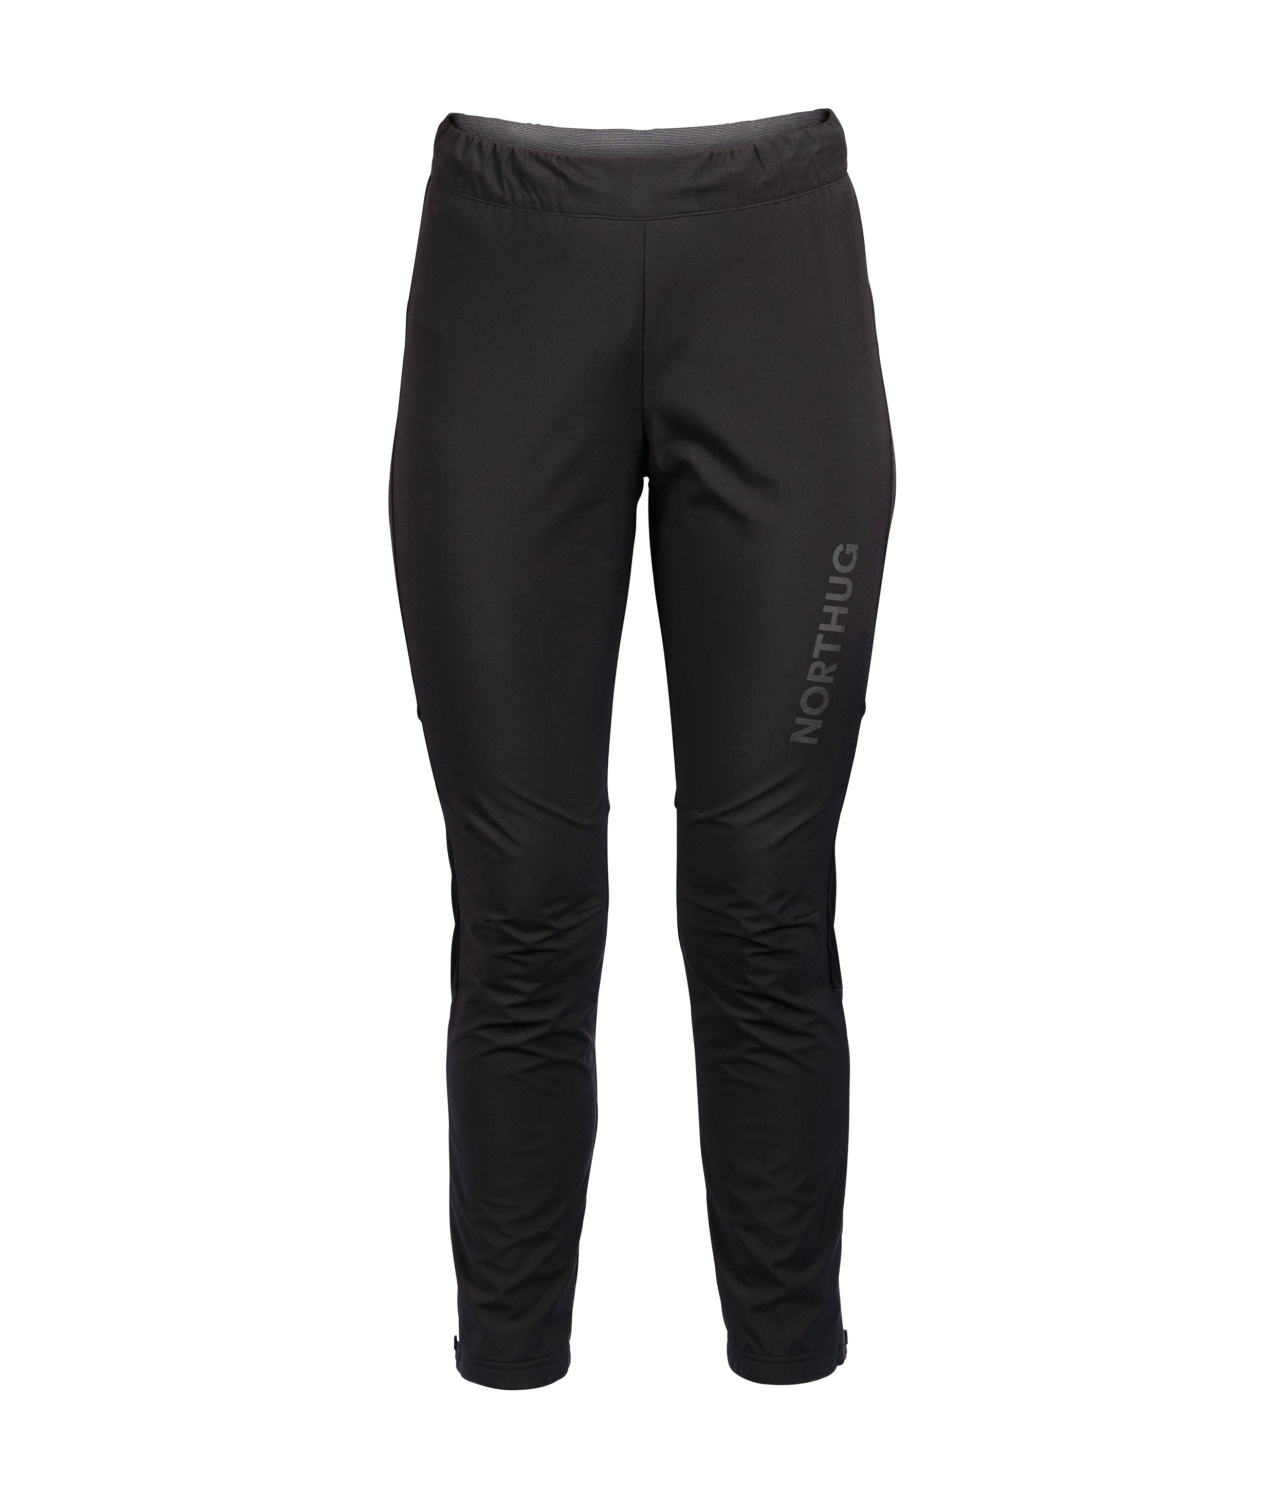 Northug  La Bresse tech pants Wmn